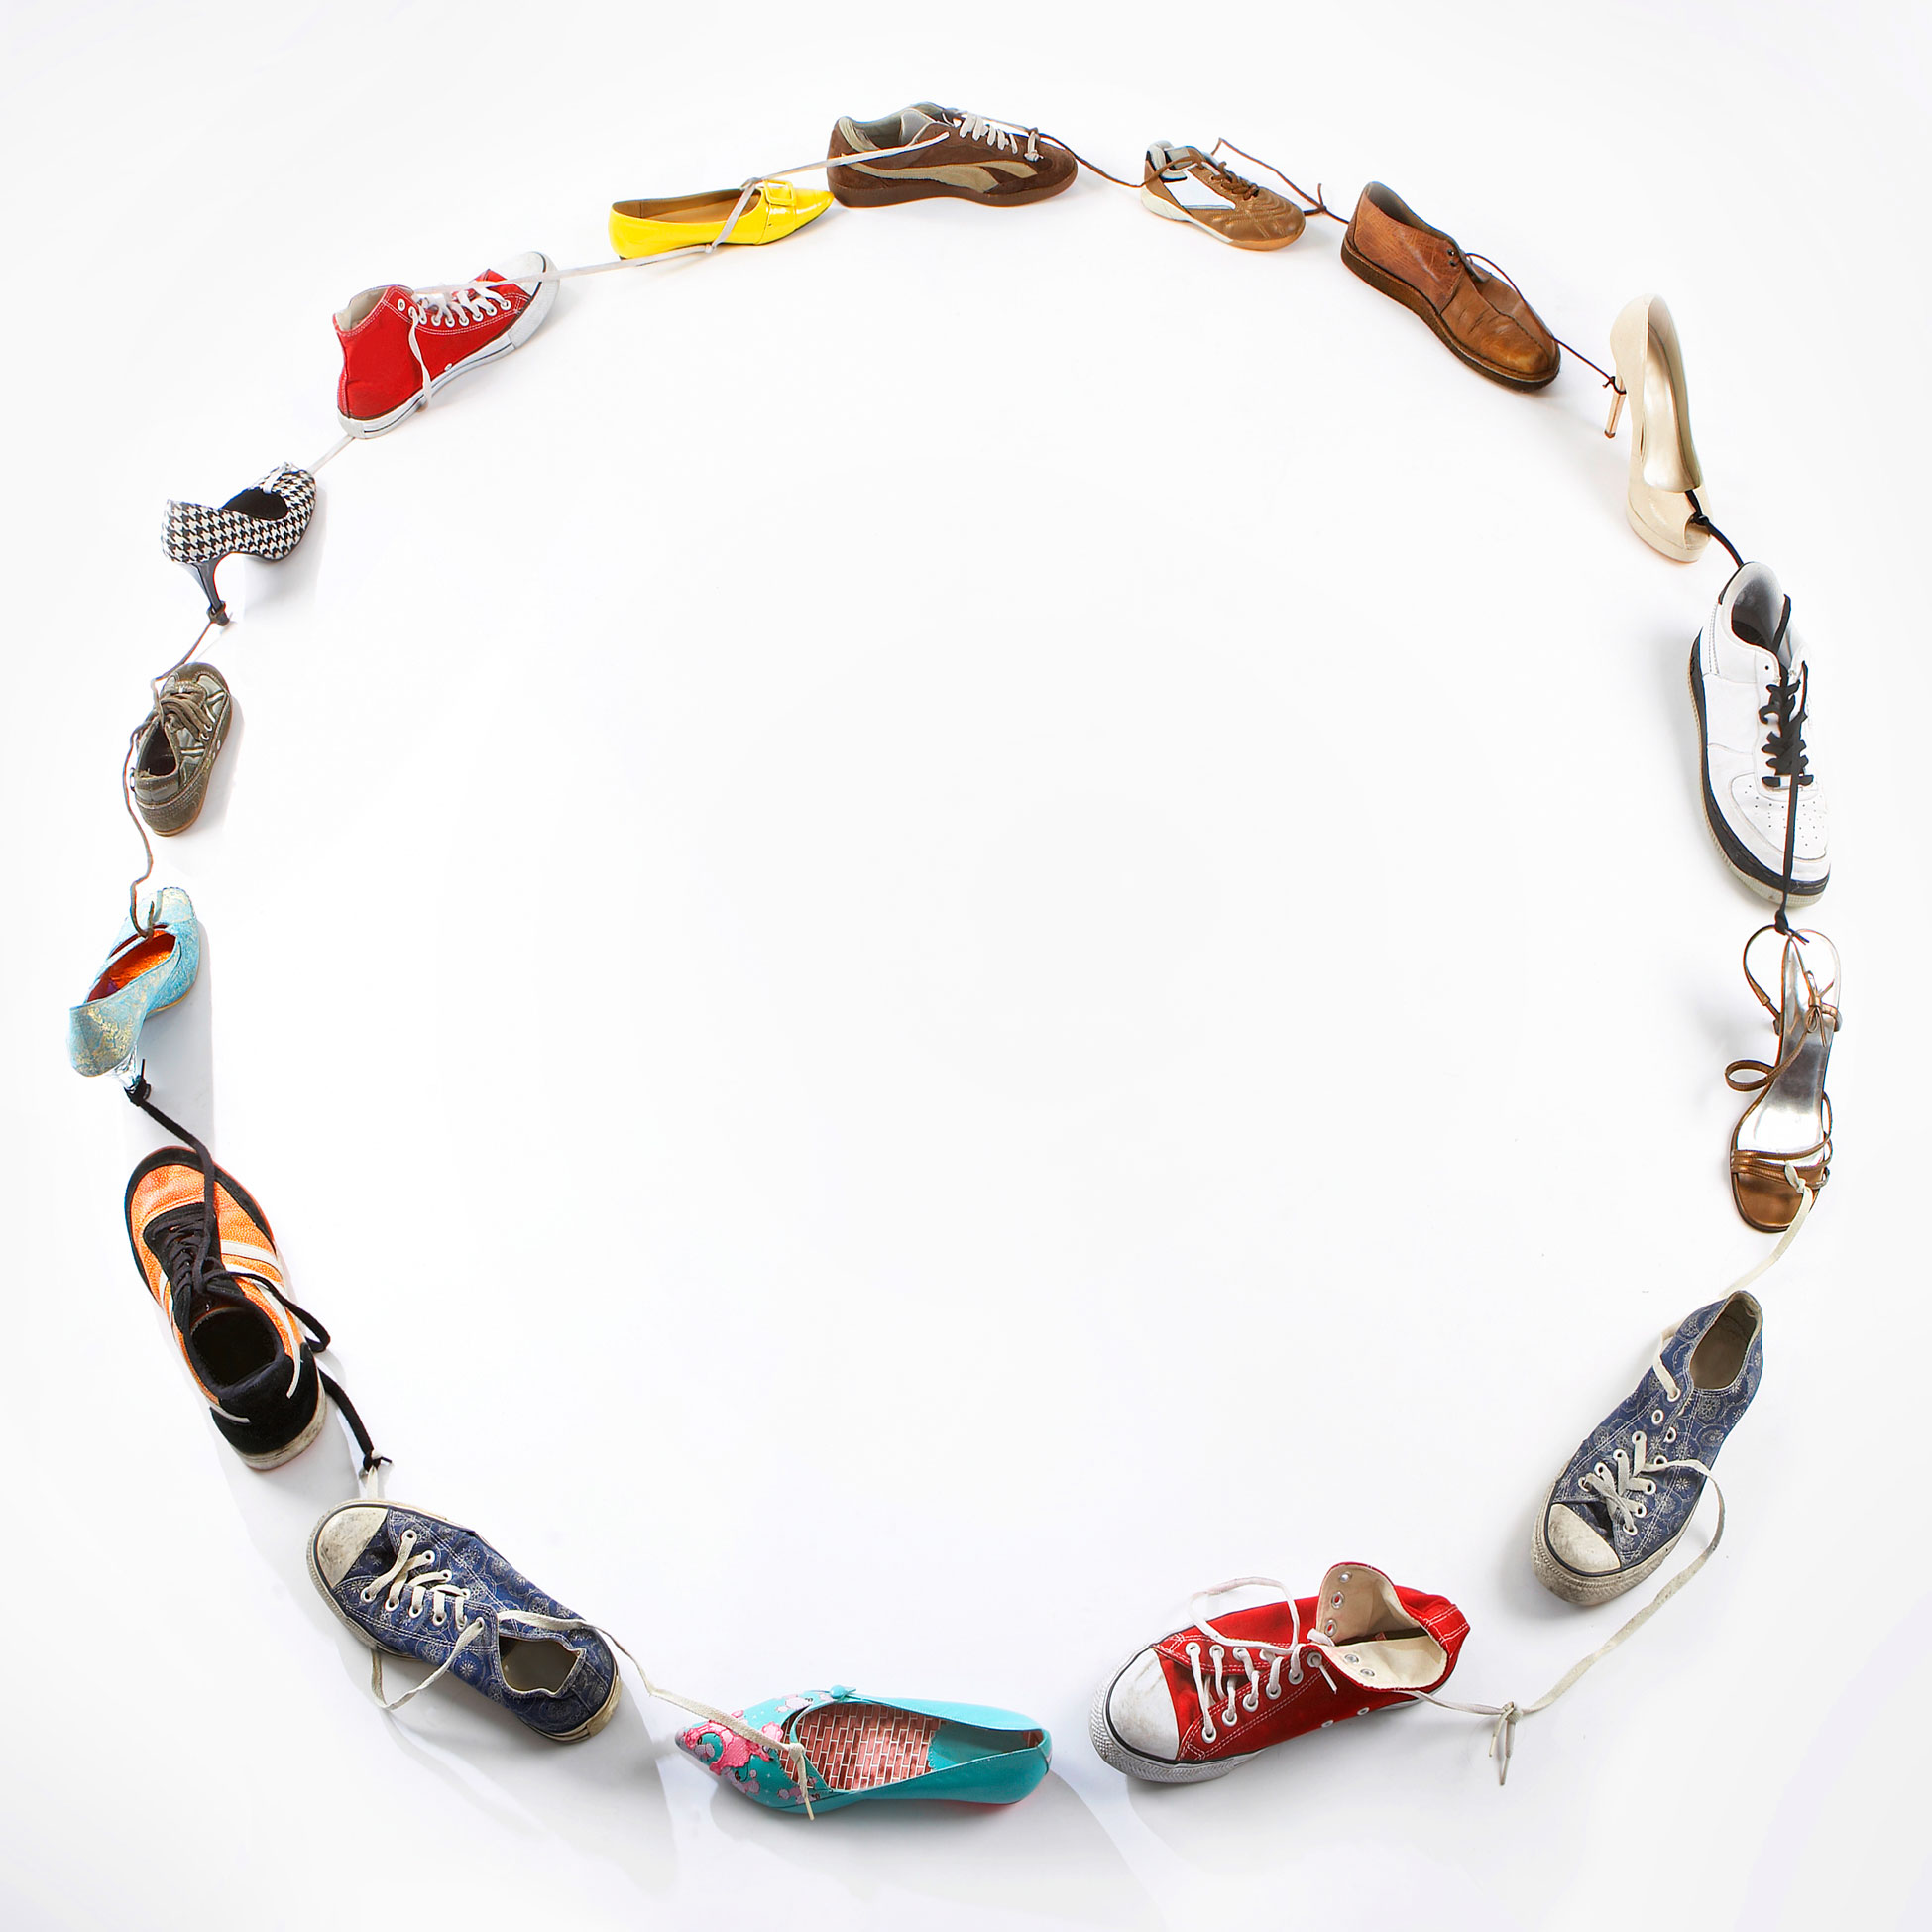 Different Shoes in Circular Arrangement